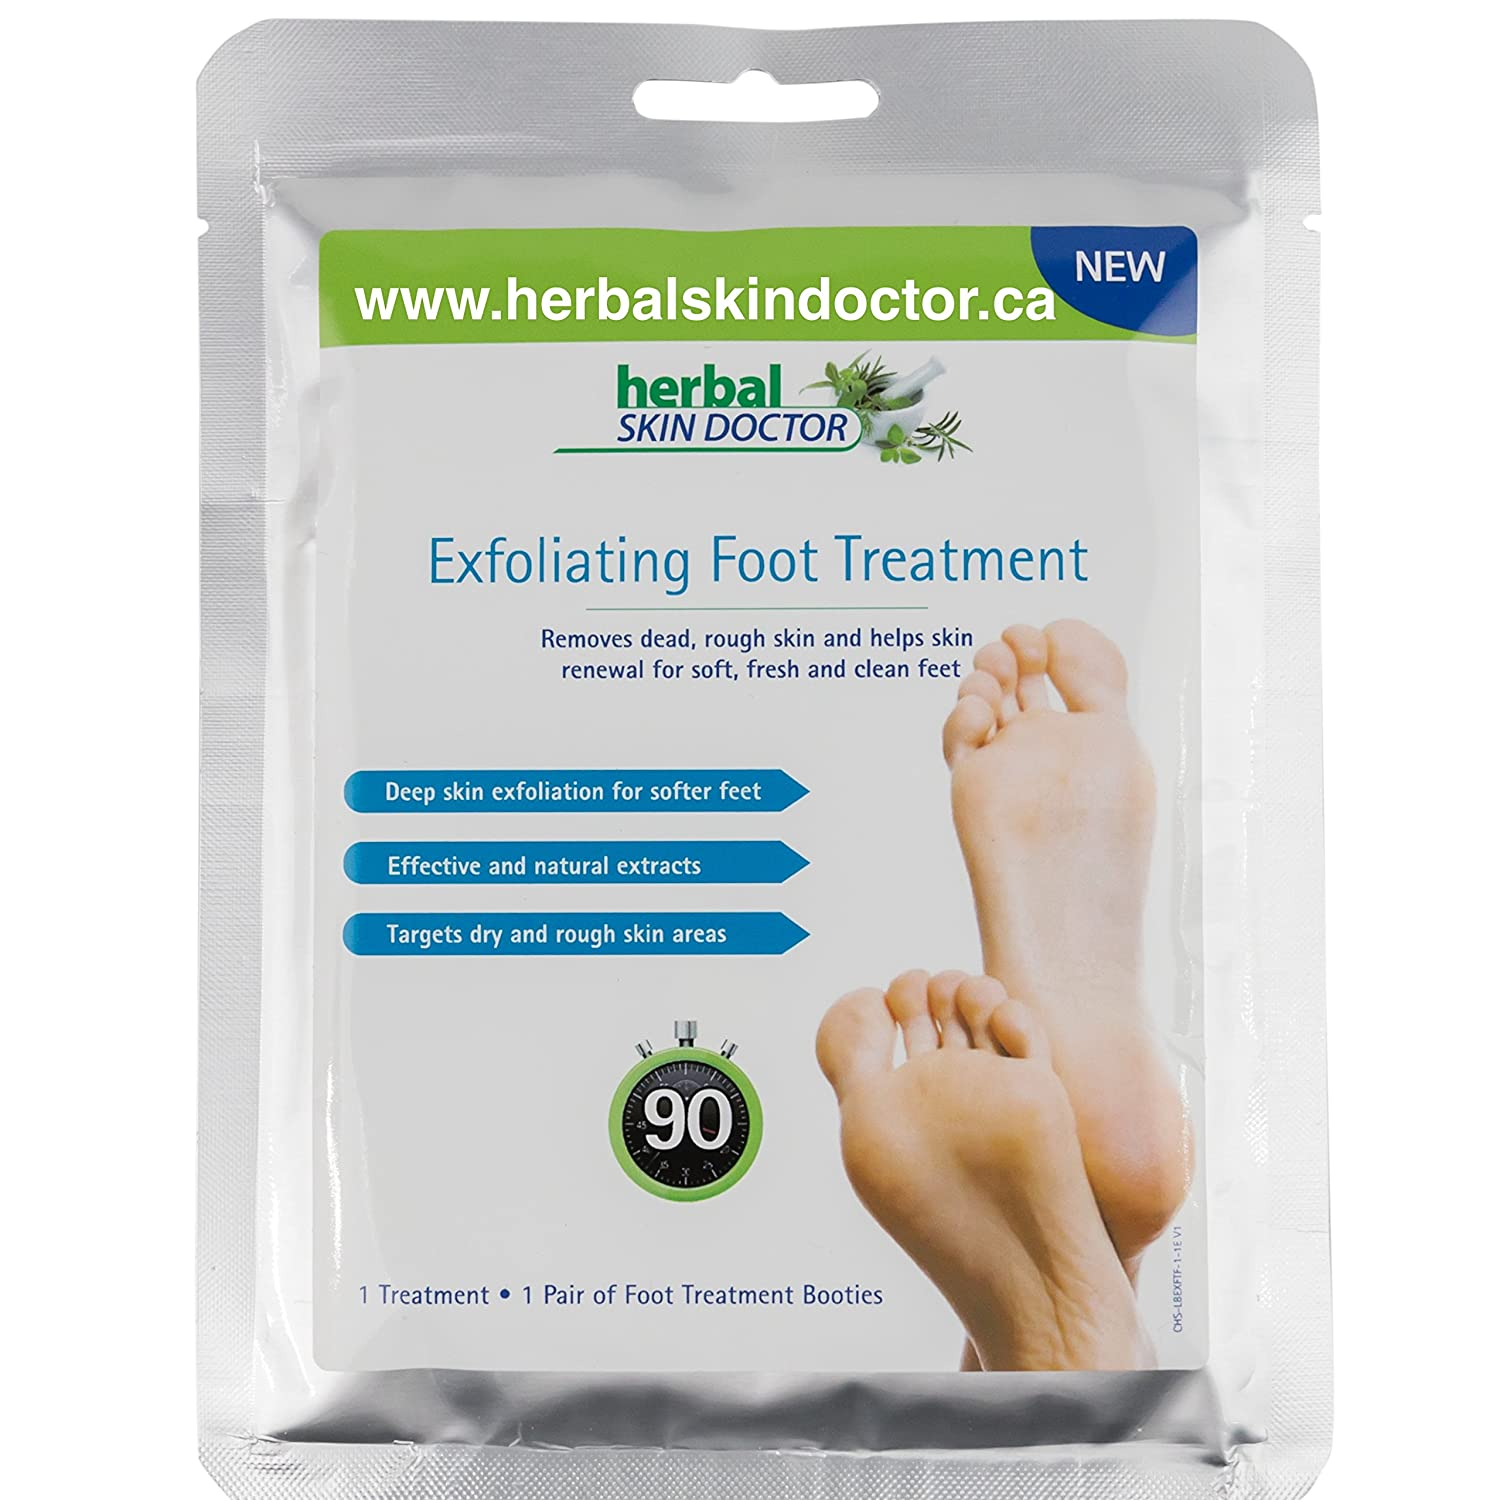 Exfoliating Foot Treatment Herbal Skin Doctor, dry treatment for baby soft skin. Removes dead, rough skin and helps skin renewal for soft, fresh and clean feet. Medex Scientific co uk